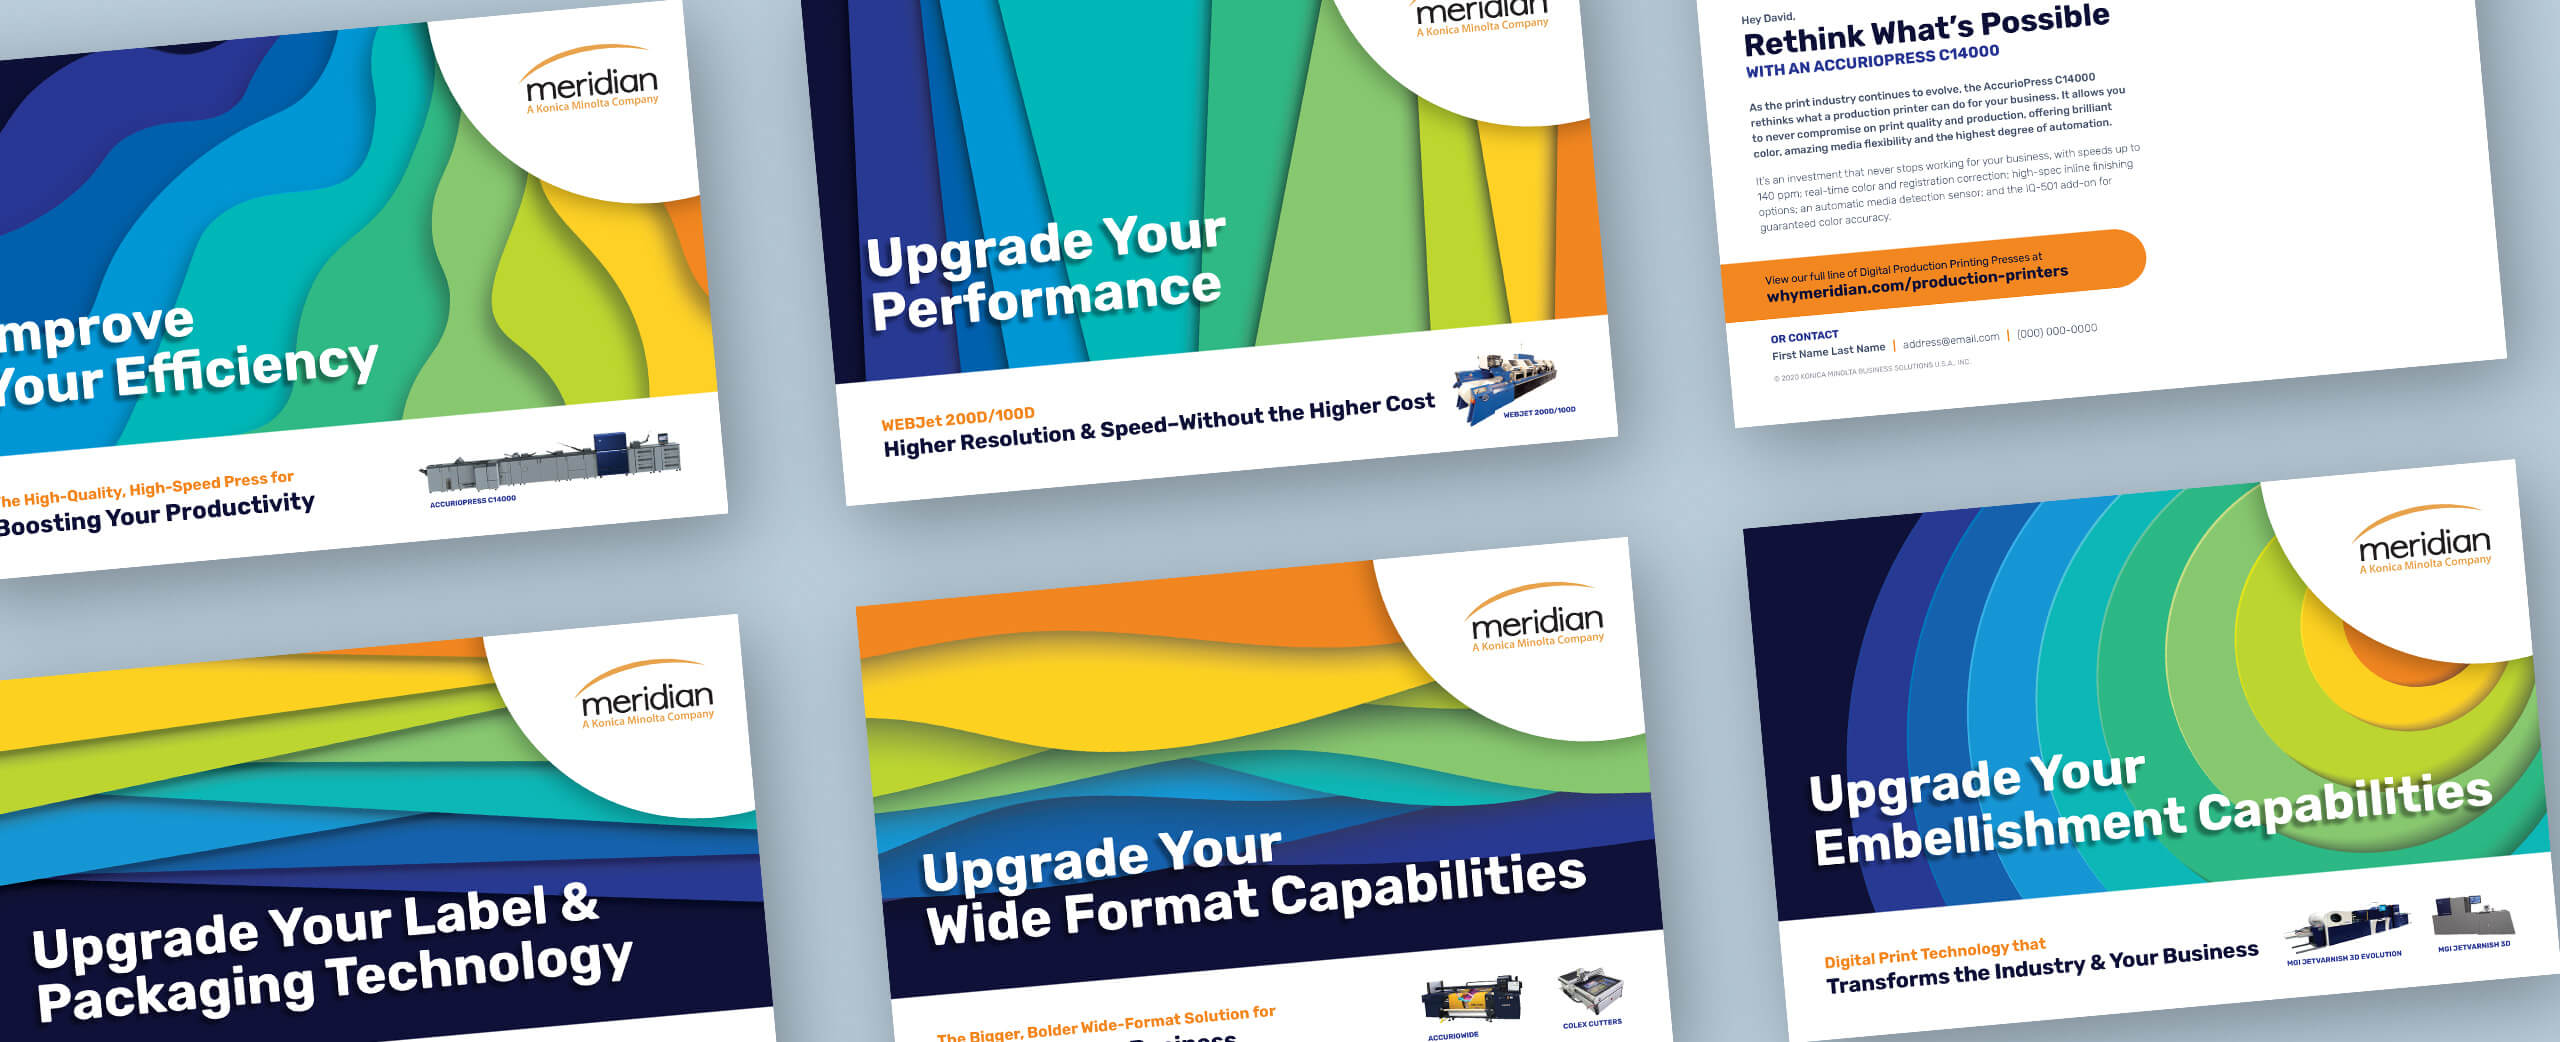 dmg-marketing-collateral-meridian-postcard-group